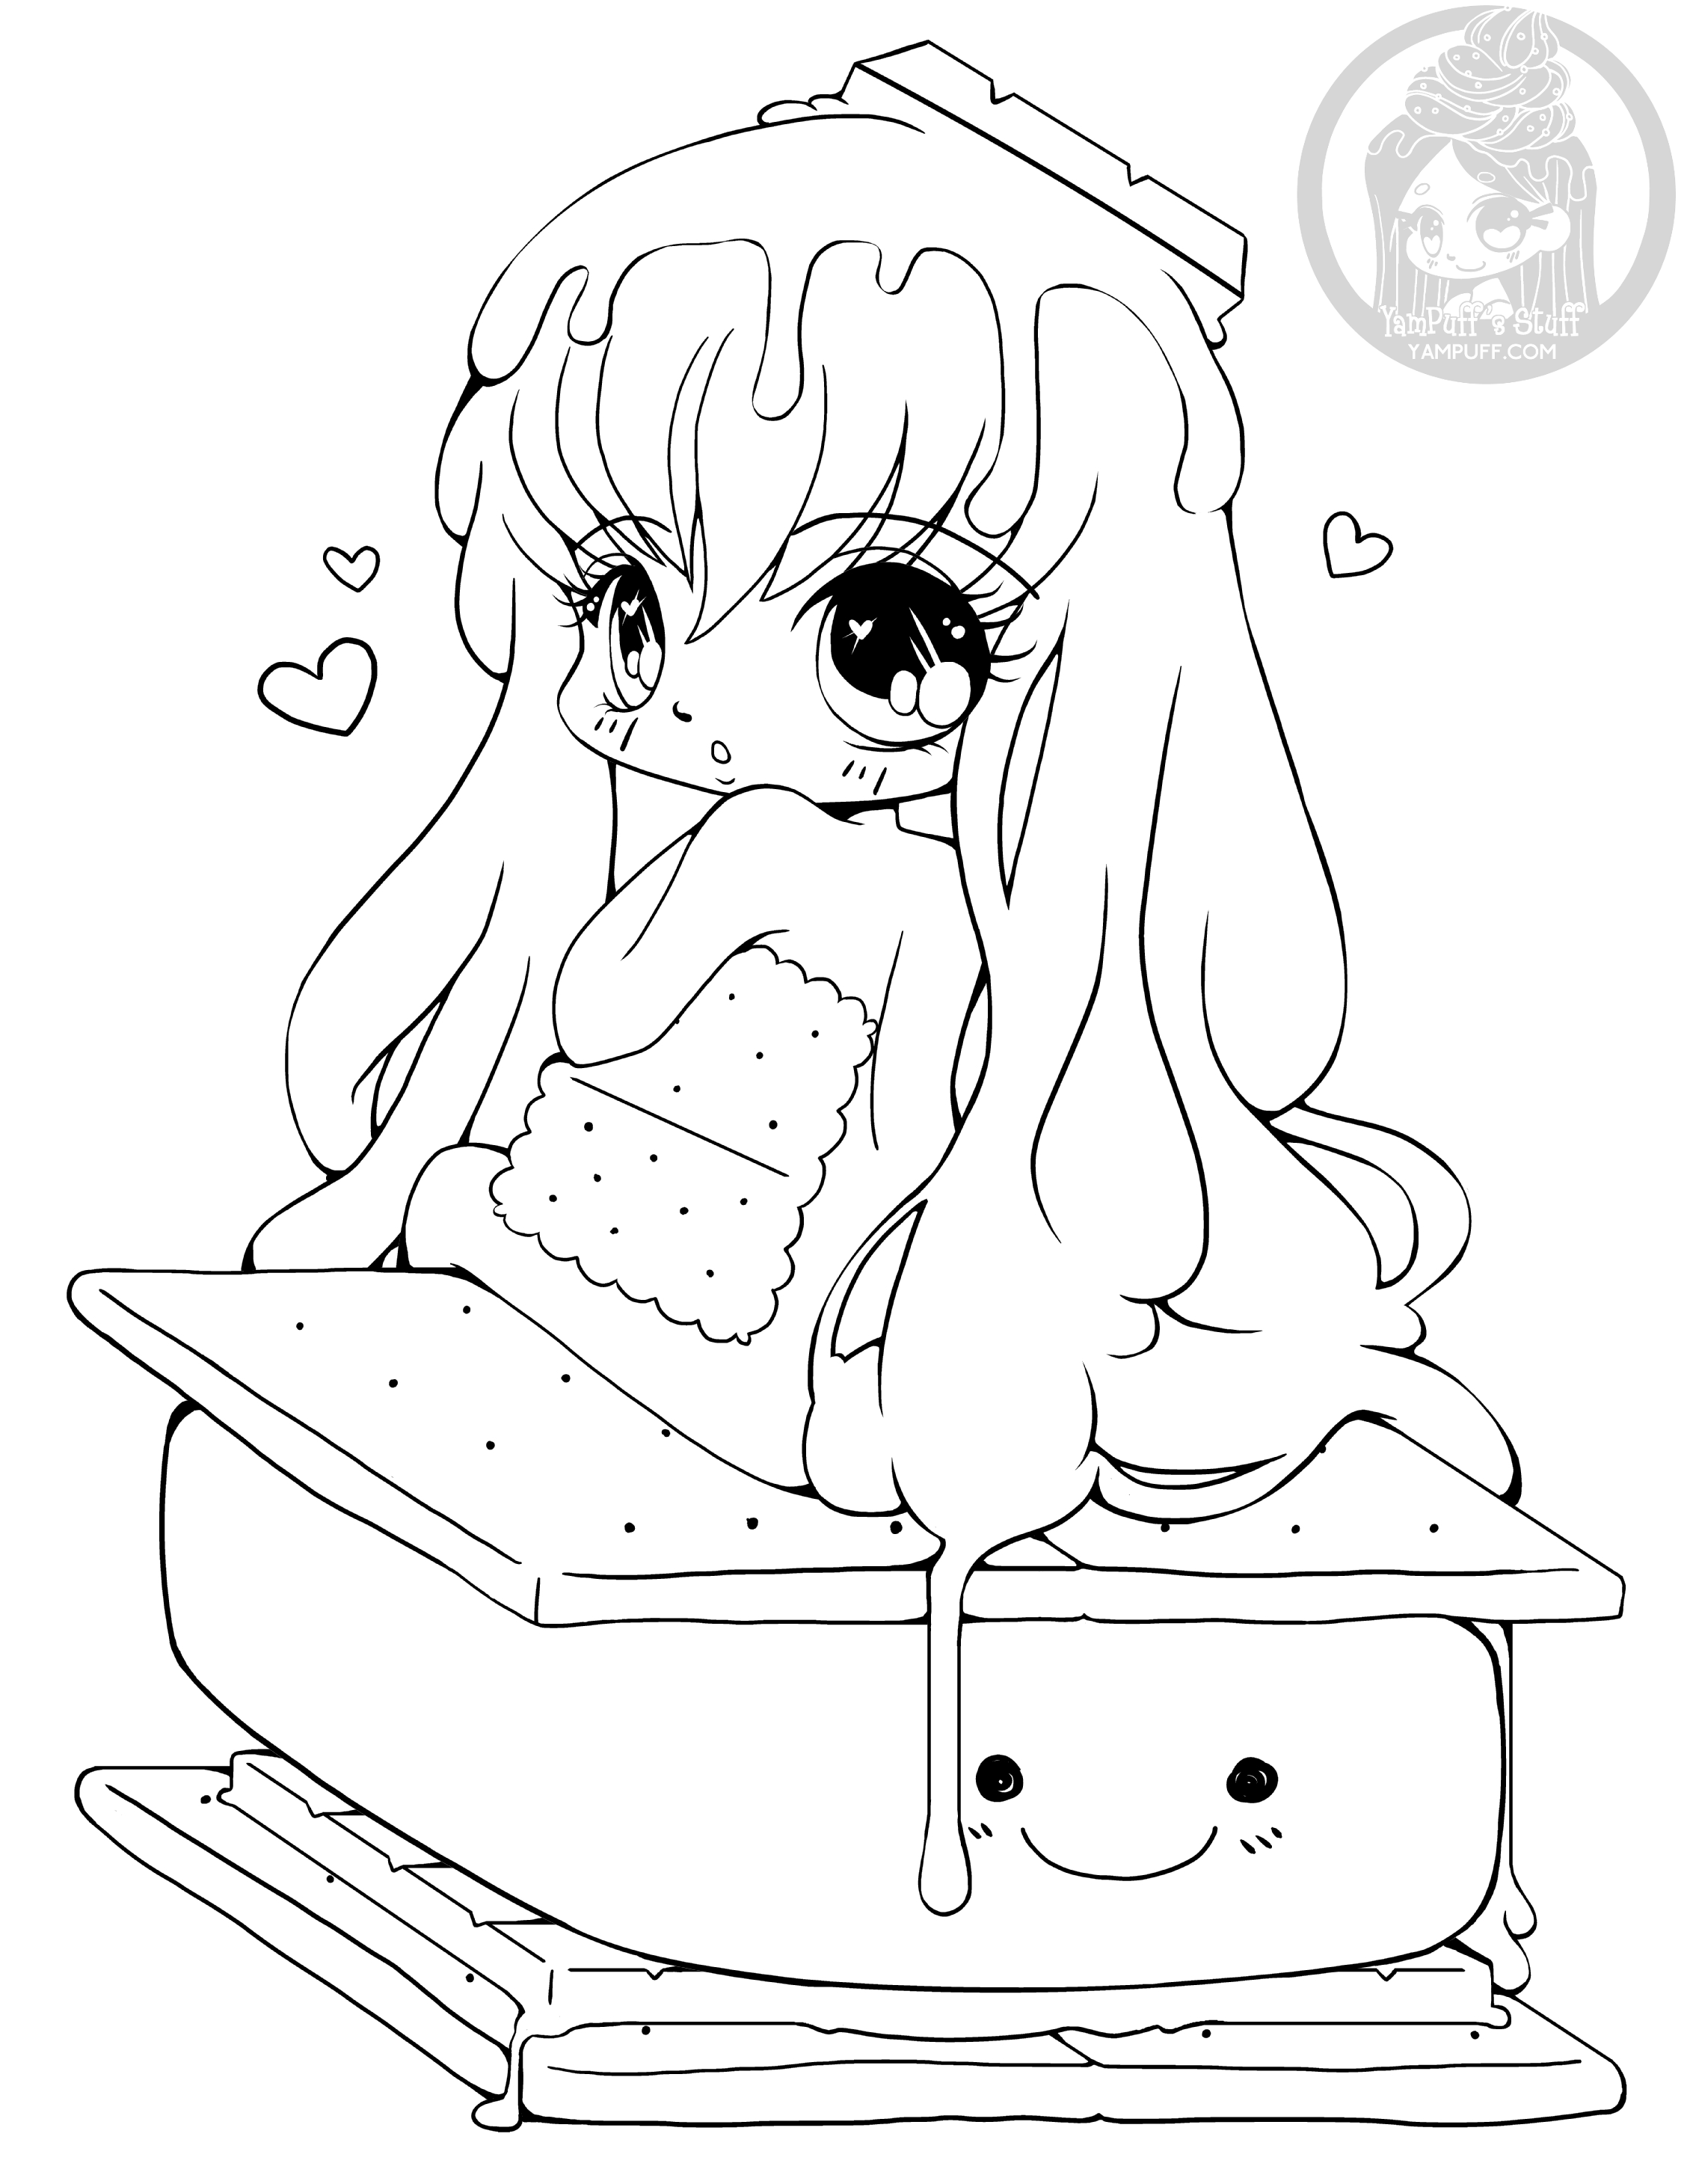 cute chibi girl coloring pages yampuff fanclub kleurplaat google zoeken chibi girl cute chibi pages coloring